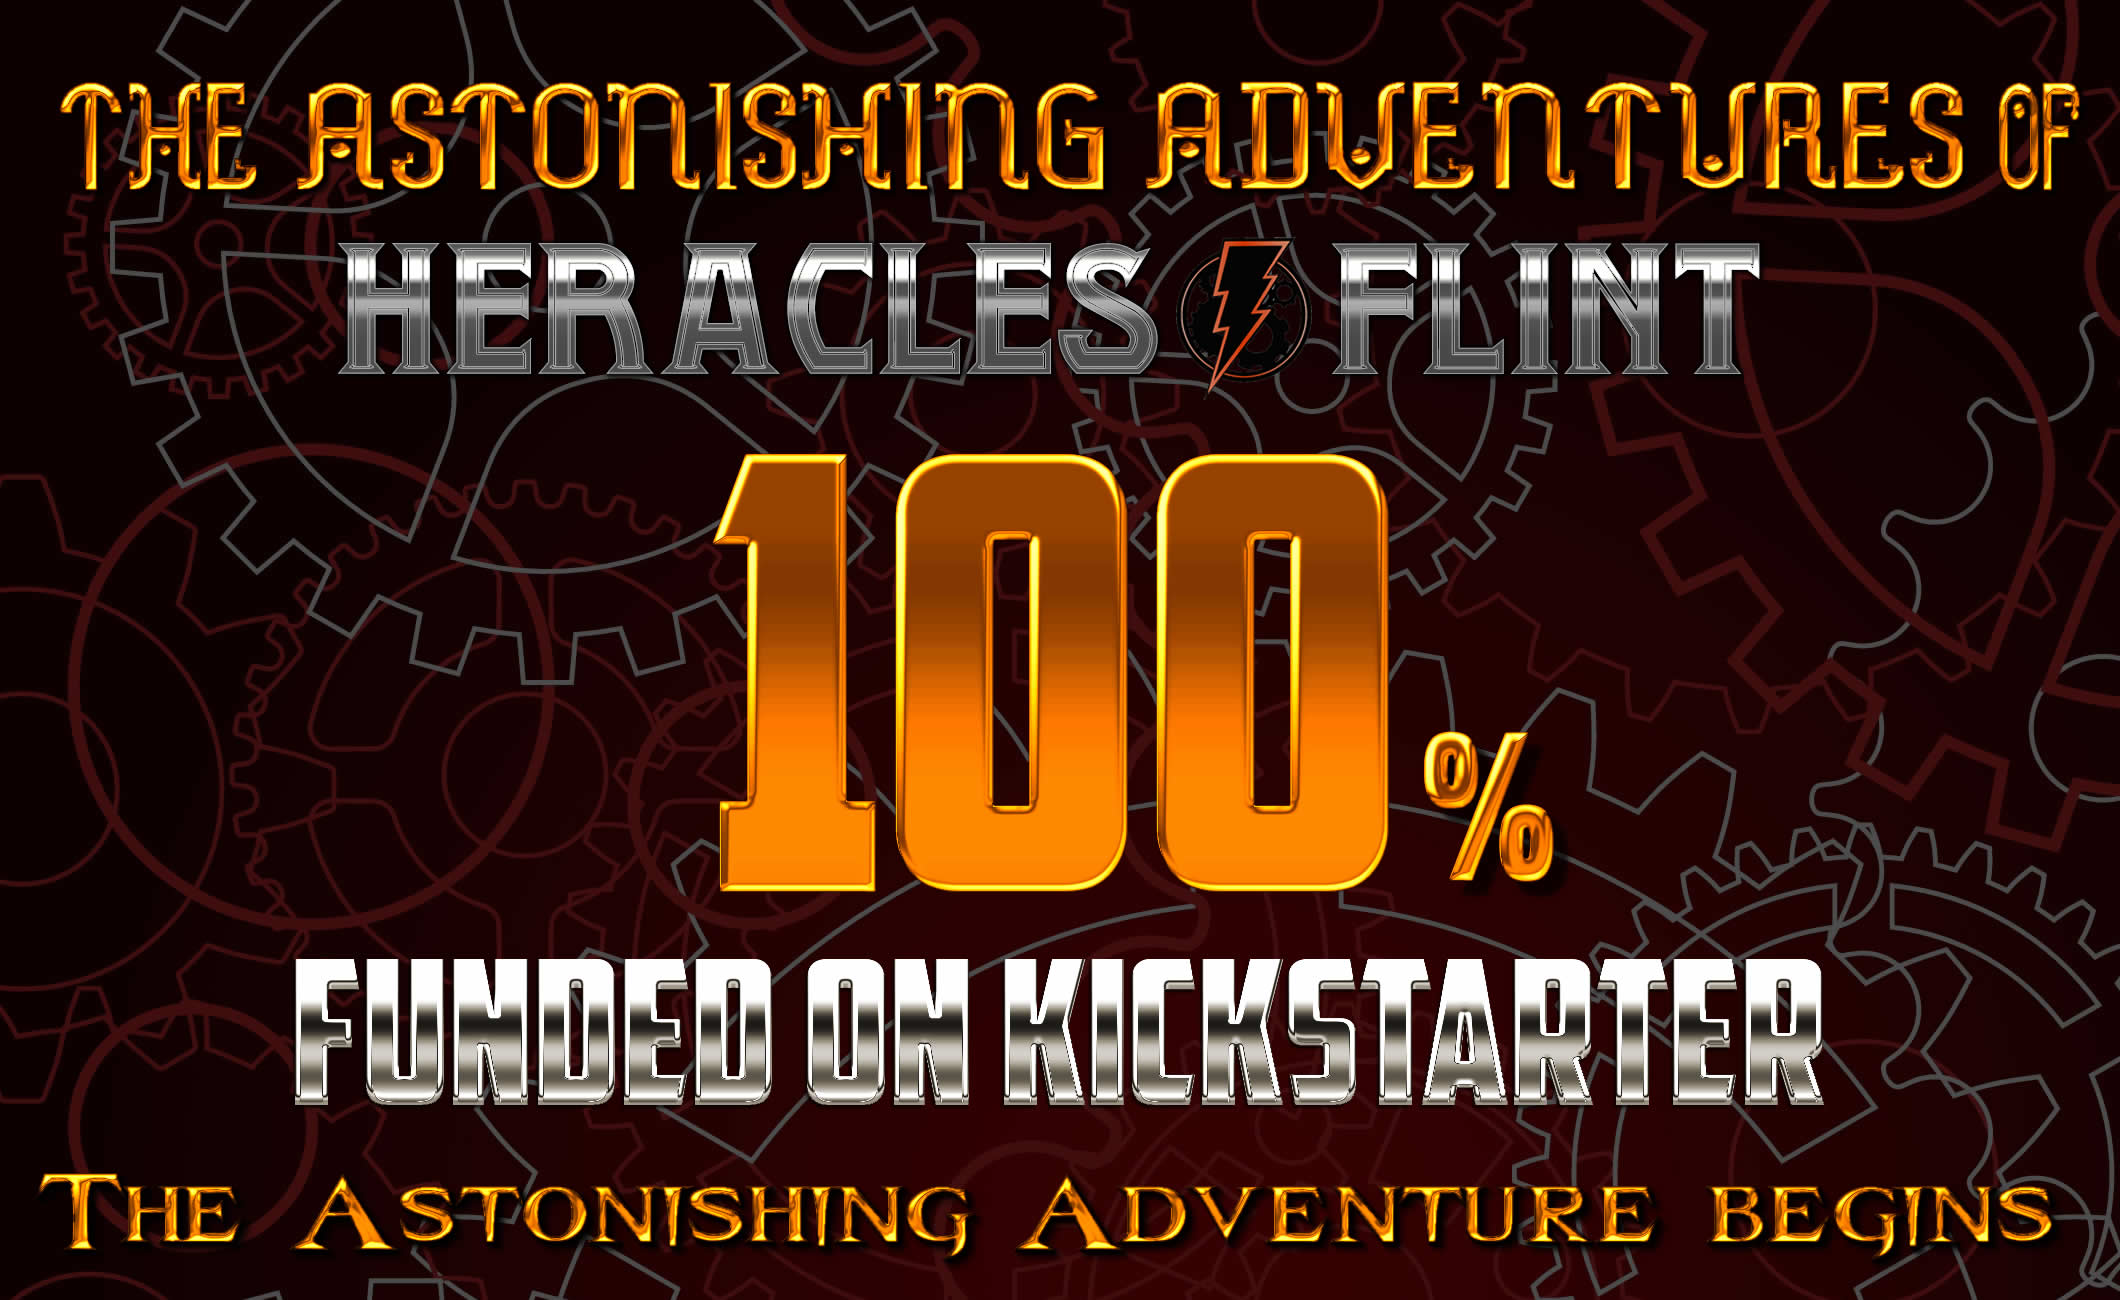 The Astonishing Adventures on Kickstarter